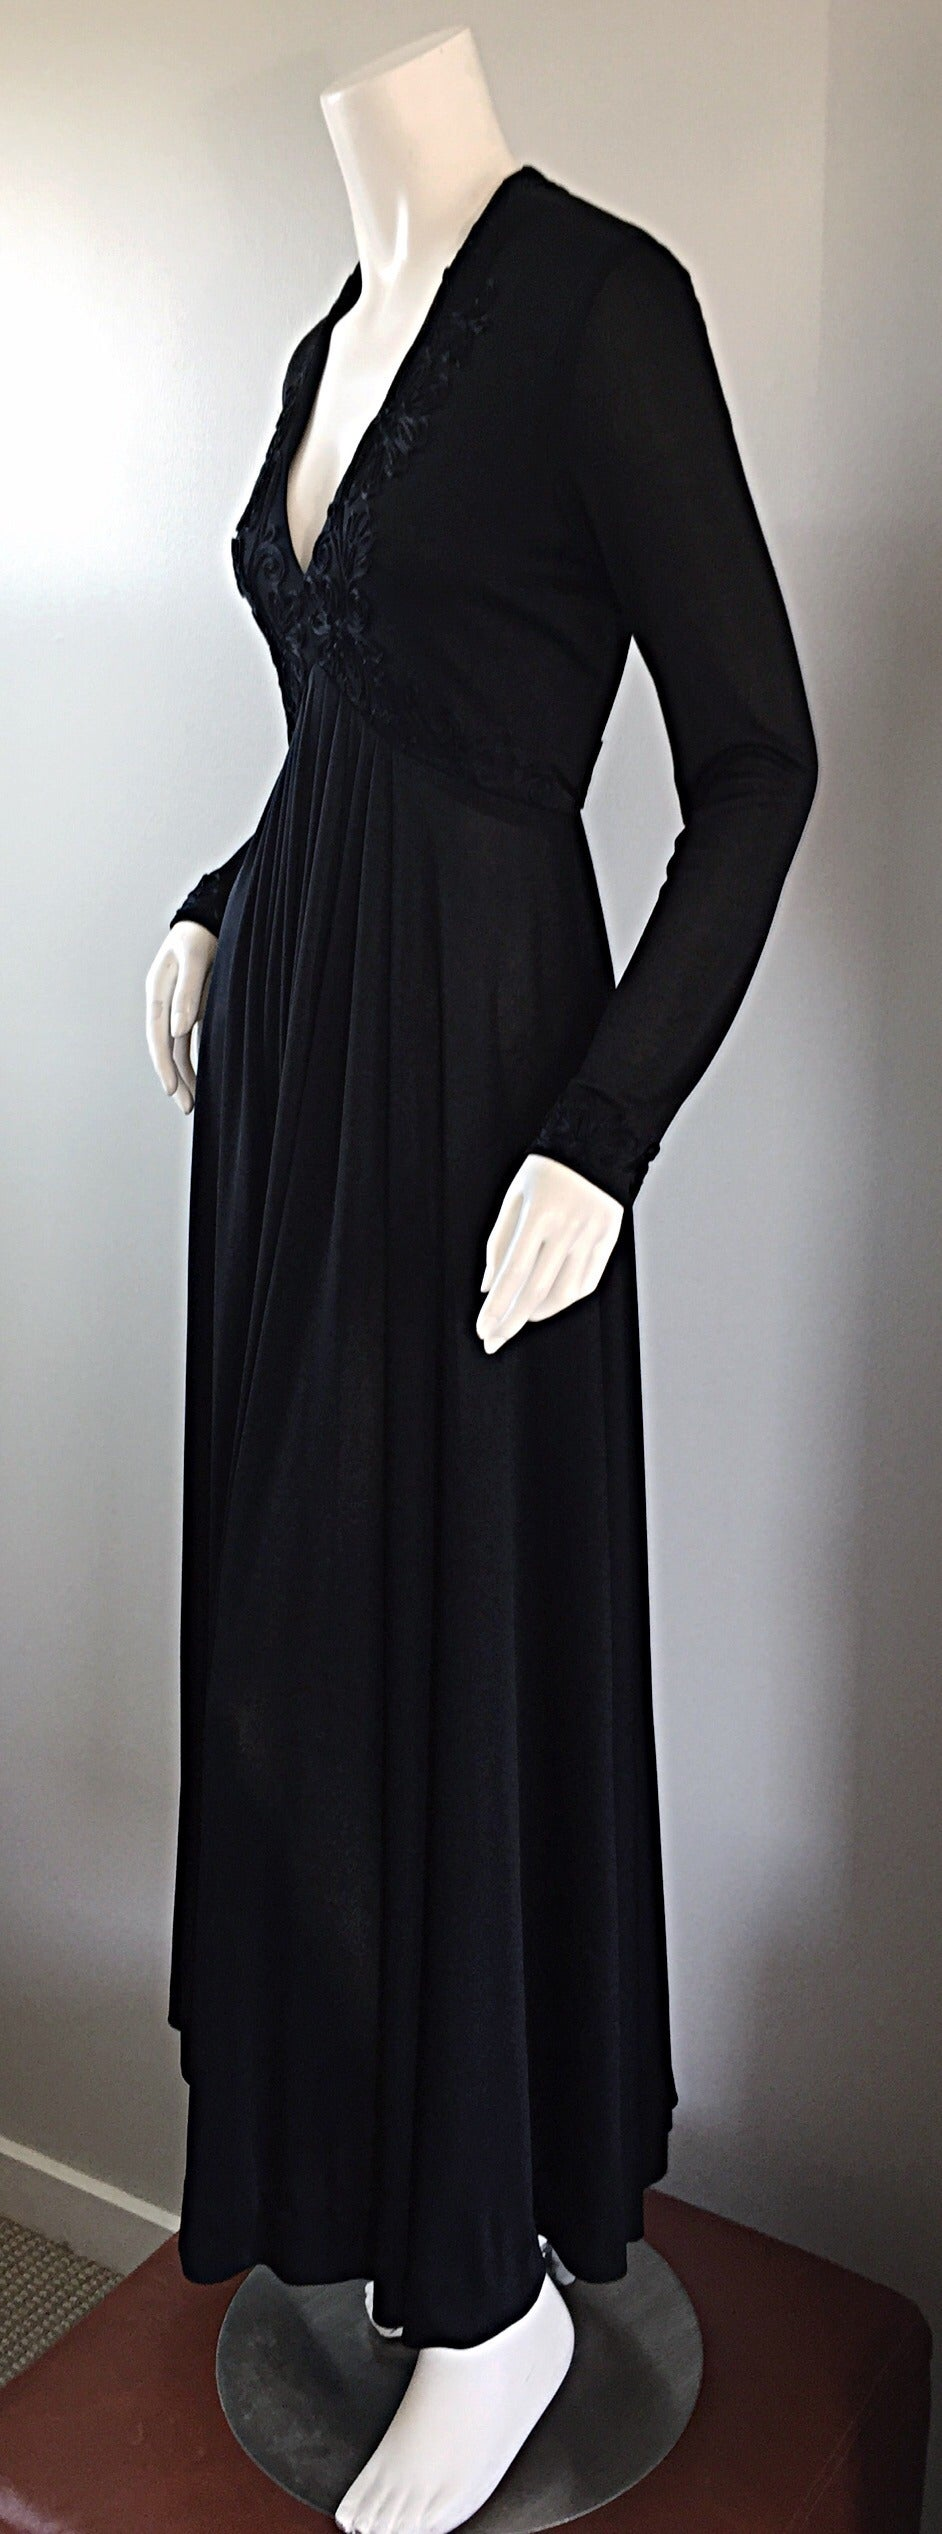 Vintage Jack Bryan Black Jersey Maxi Dress w/ Intricate Embroidery 1970s 70s 6